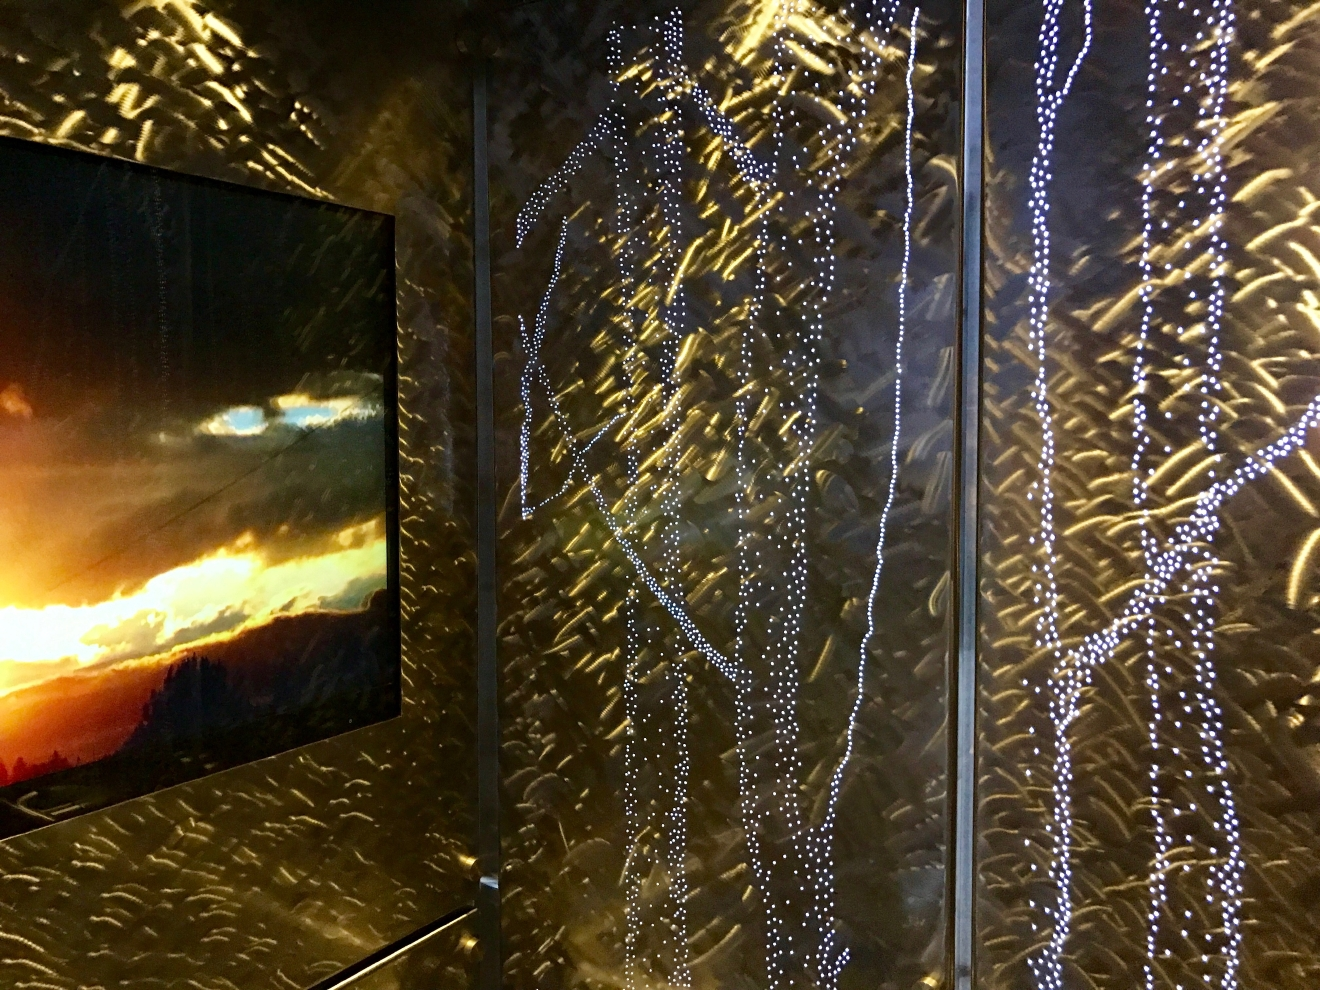 Yup - even the elevators have the woods themed! It's a little hard to tell in a photo, but interiors are lit up with tree outlines. (Image: Britt Thorson / Seattle Refined)